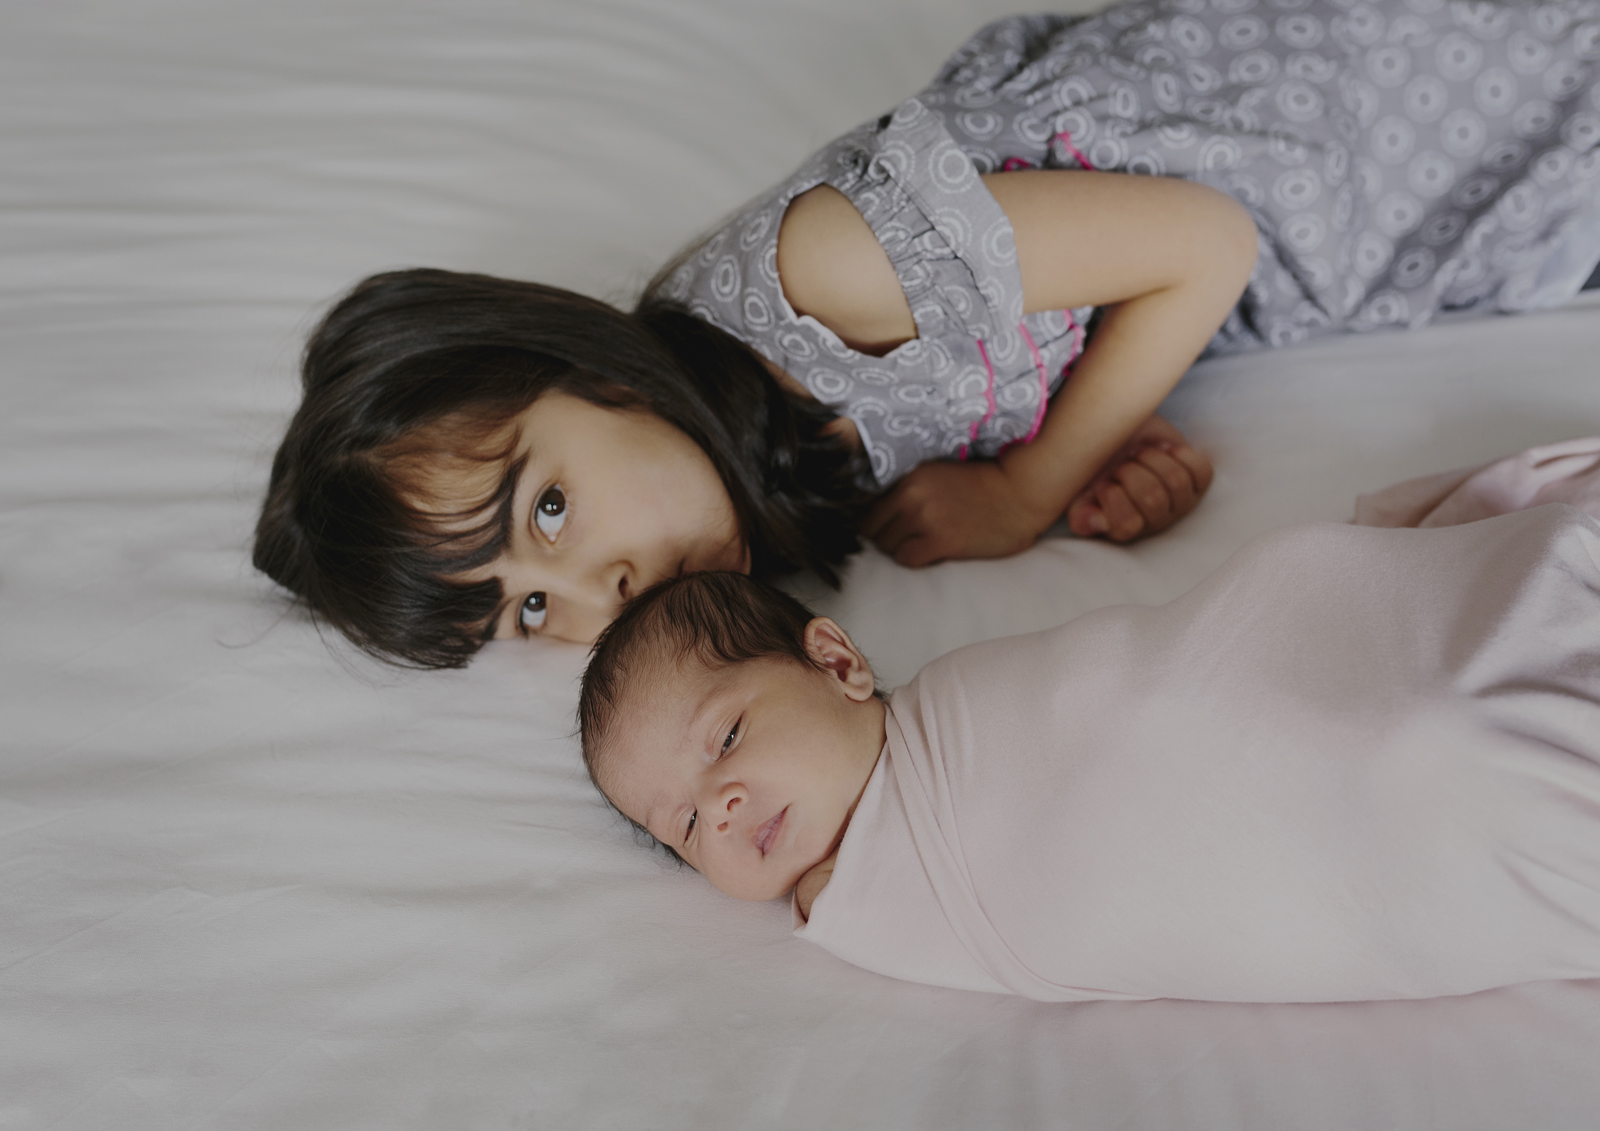 Big sister besotted with her newborn baby sister